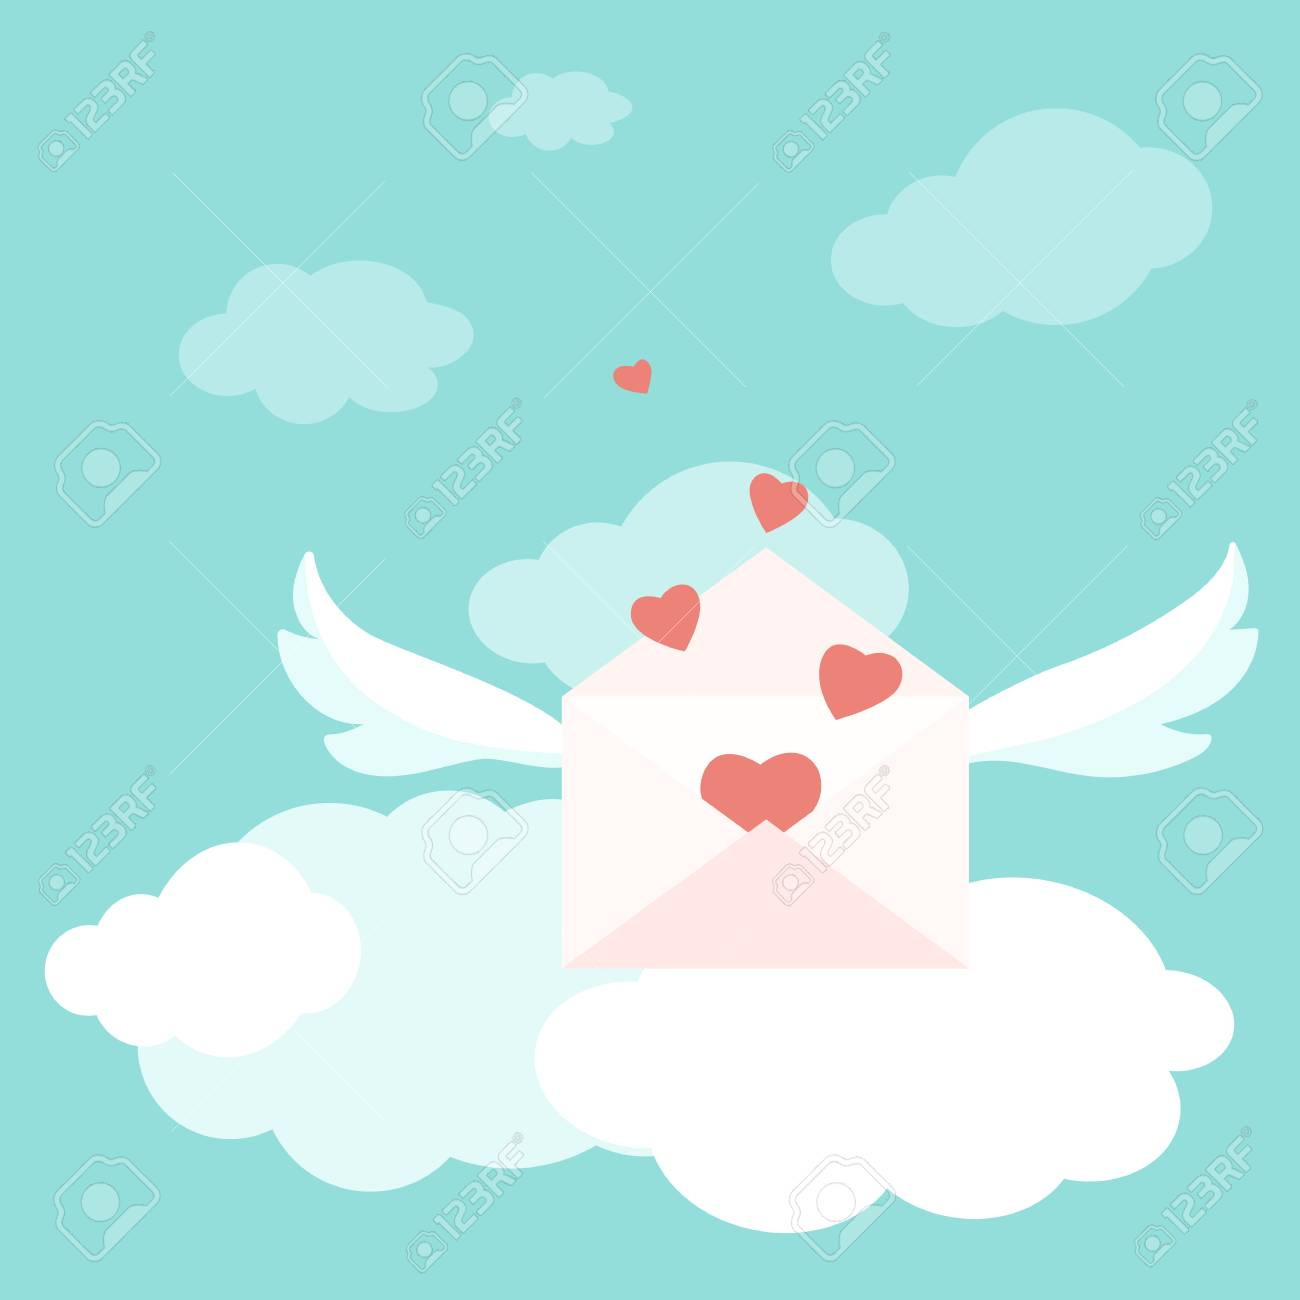 Valentine day greetings delivery concept flying love letter stock illustration valentine day greetings delivery concept flying love letter envelopes with wings filled with red heart shapes bright blue sky with fluffy m4hsunfo